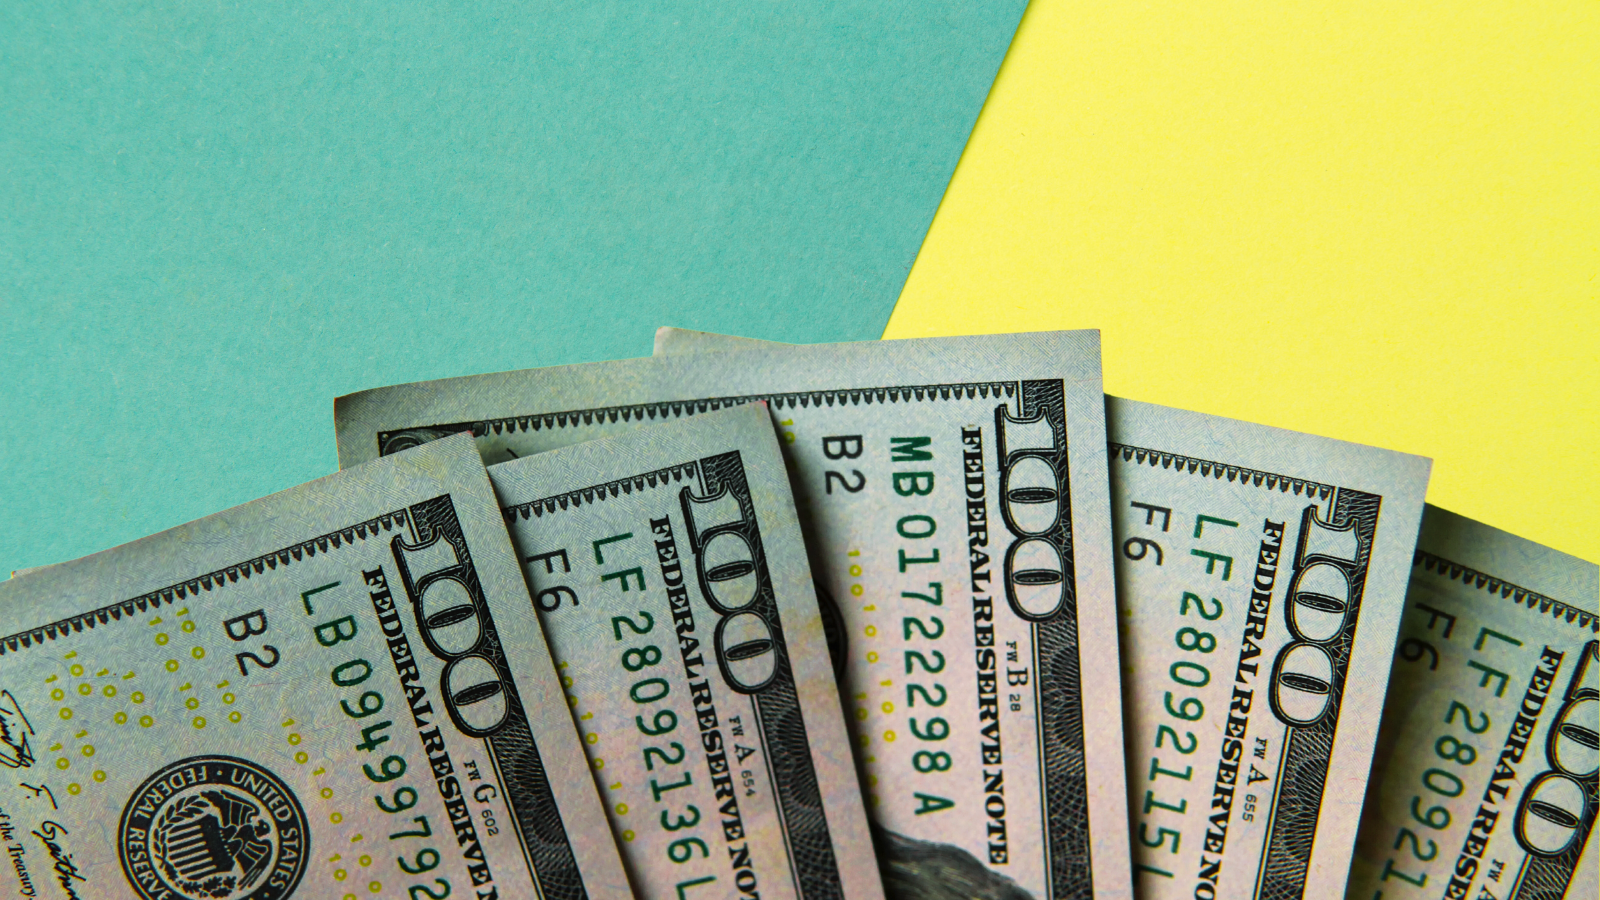 Mint green and yellow construction paper background with five $100 bills superimposed on top in a fan pattern